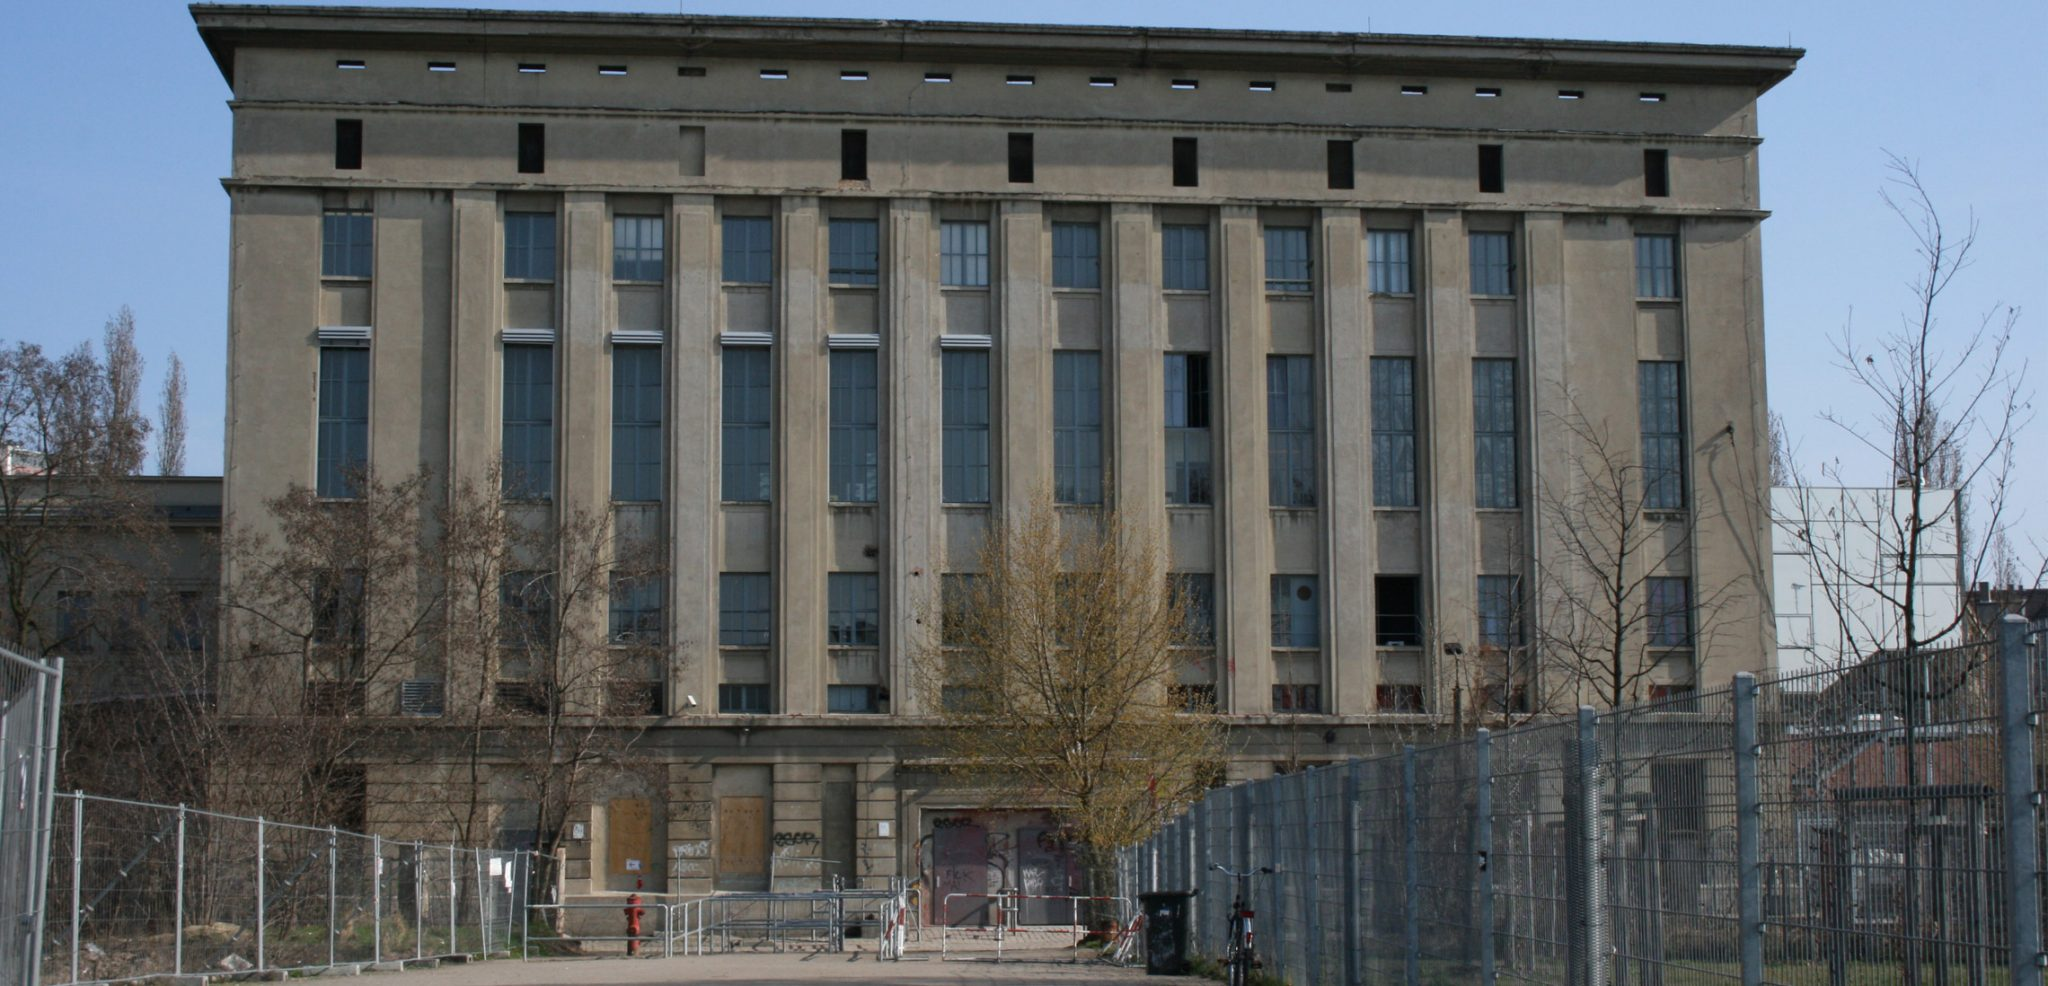 Berghain's huge 2015 NYE celebration line up.